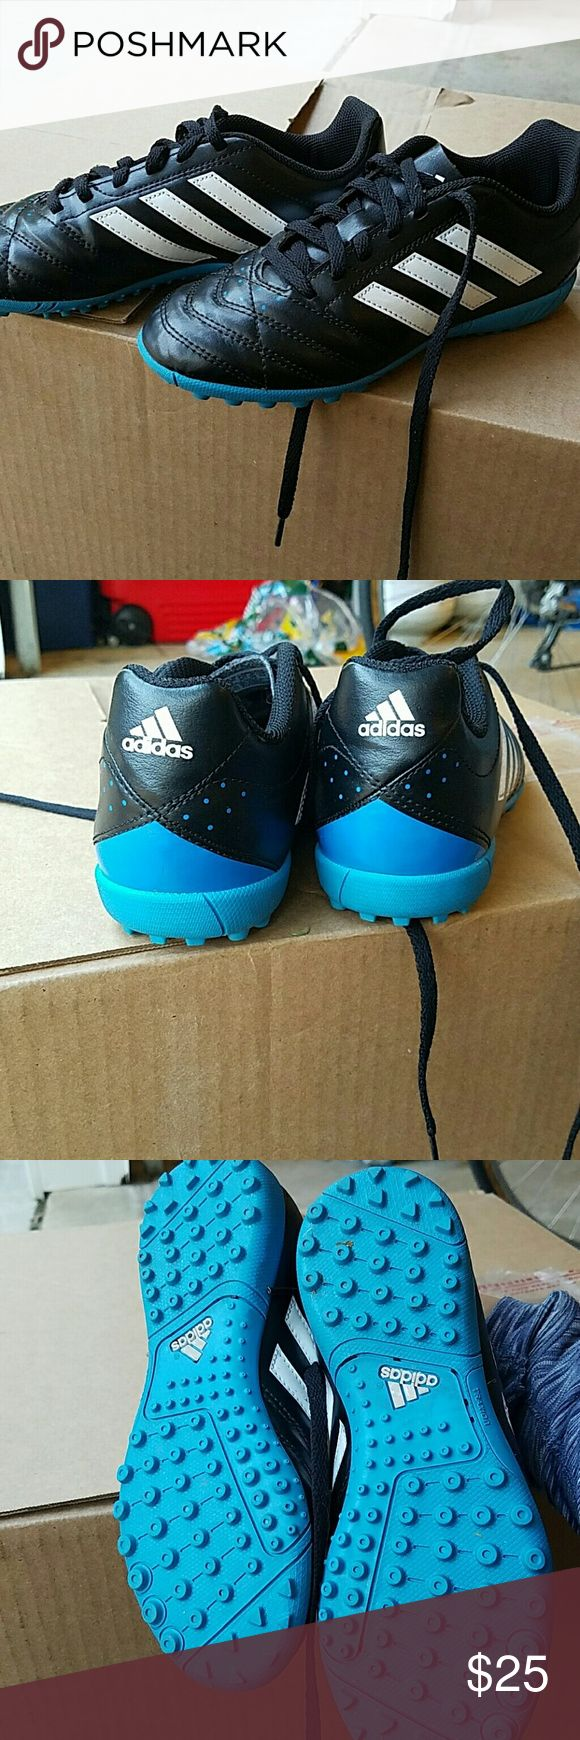 Kids Adidas turf shoes Kids Adidas turf shoes Adidas Shoes Sneakers